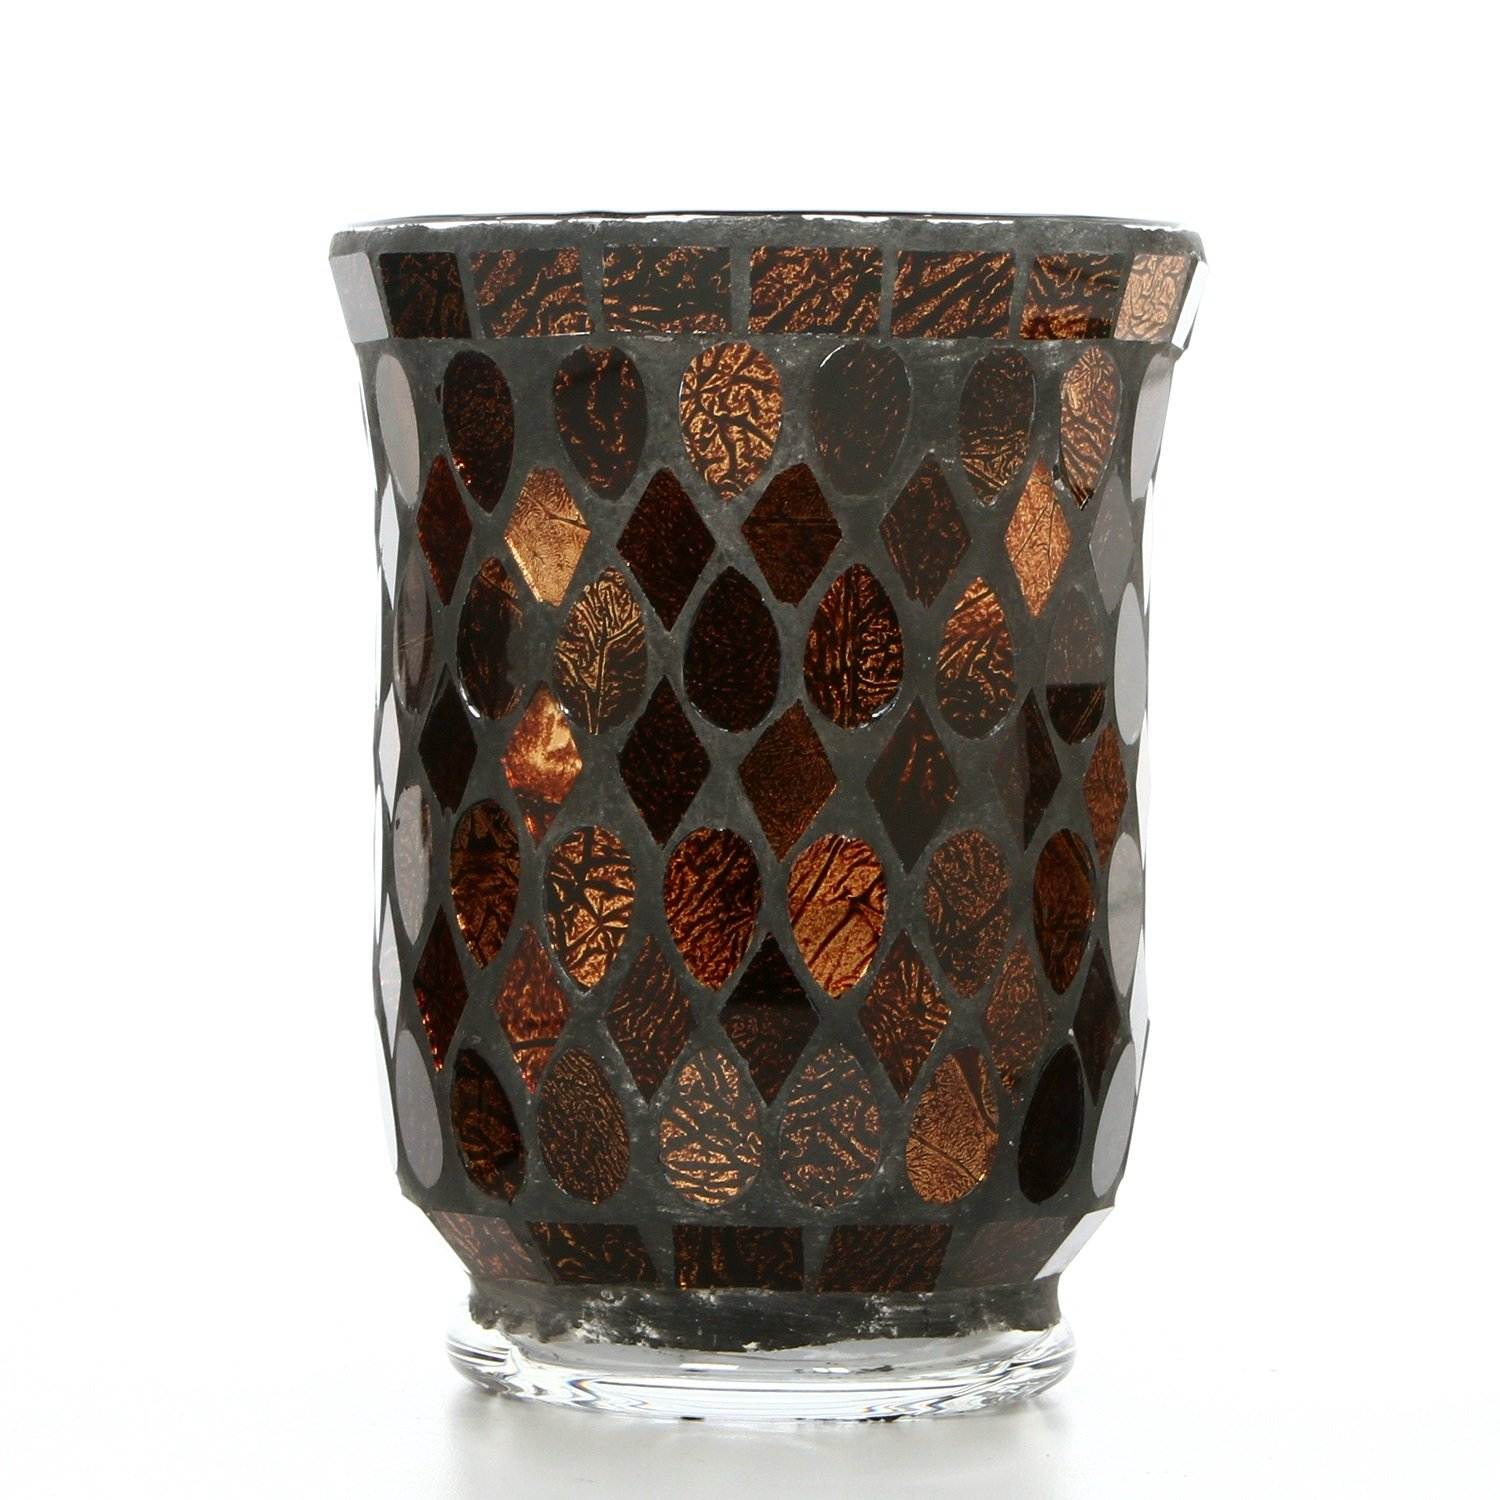 Hosley Mosaic Glass Hurricane Candle Holder- 5'' High. Wonderful Accent Piece for Coffee or Side Tables. Ideal Gift for Weddings, Home, Events P2